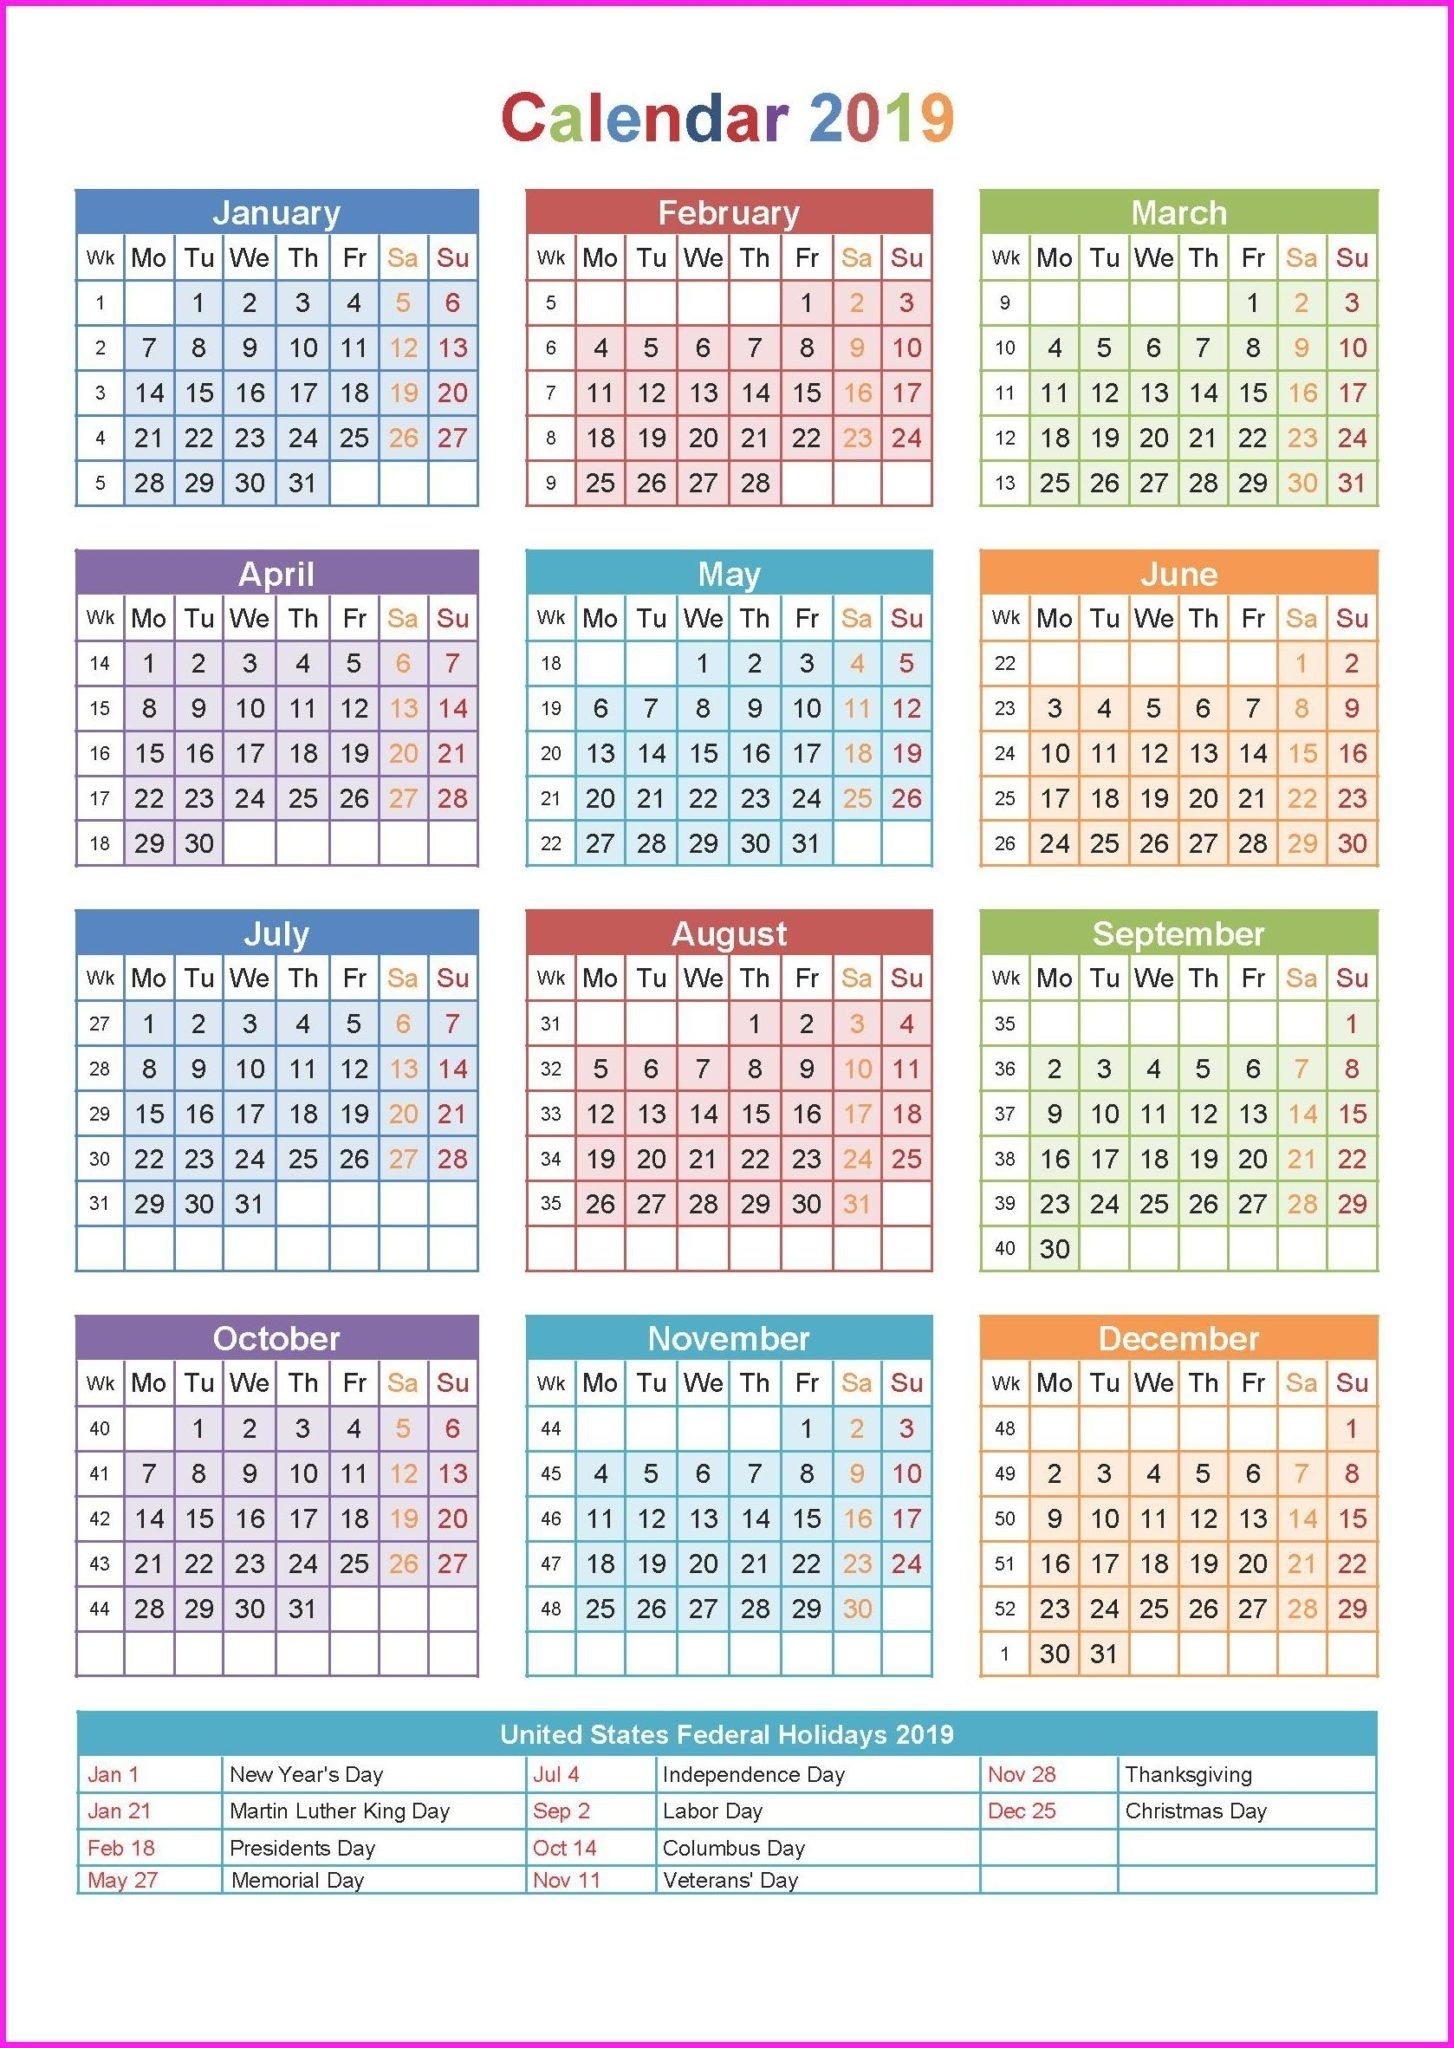 2019 Holiday Calendar Usa | Yearly Calendar In One Page | Yearly pertaining to 1 Page Calendar 2019-2020 With Major Holidays